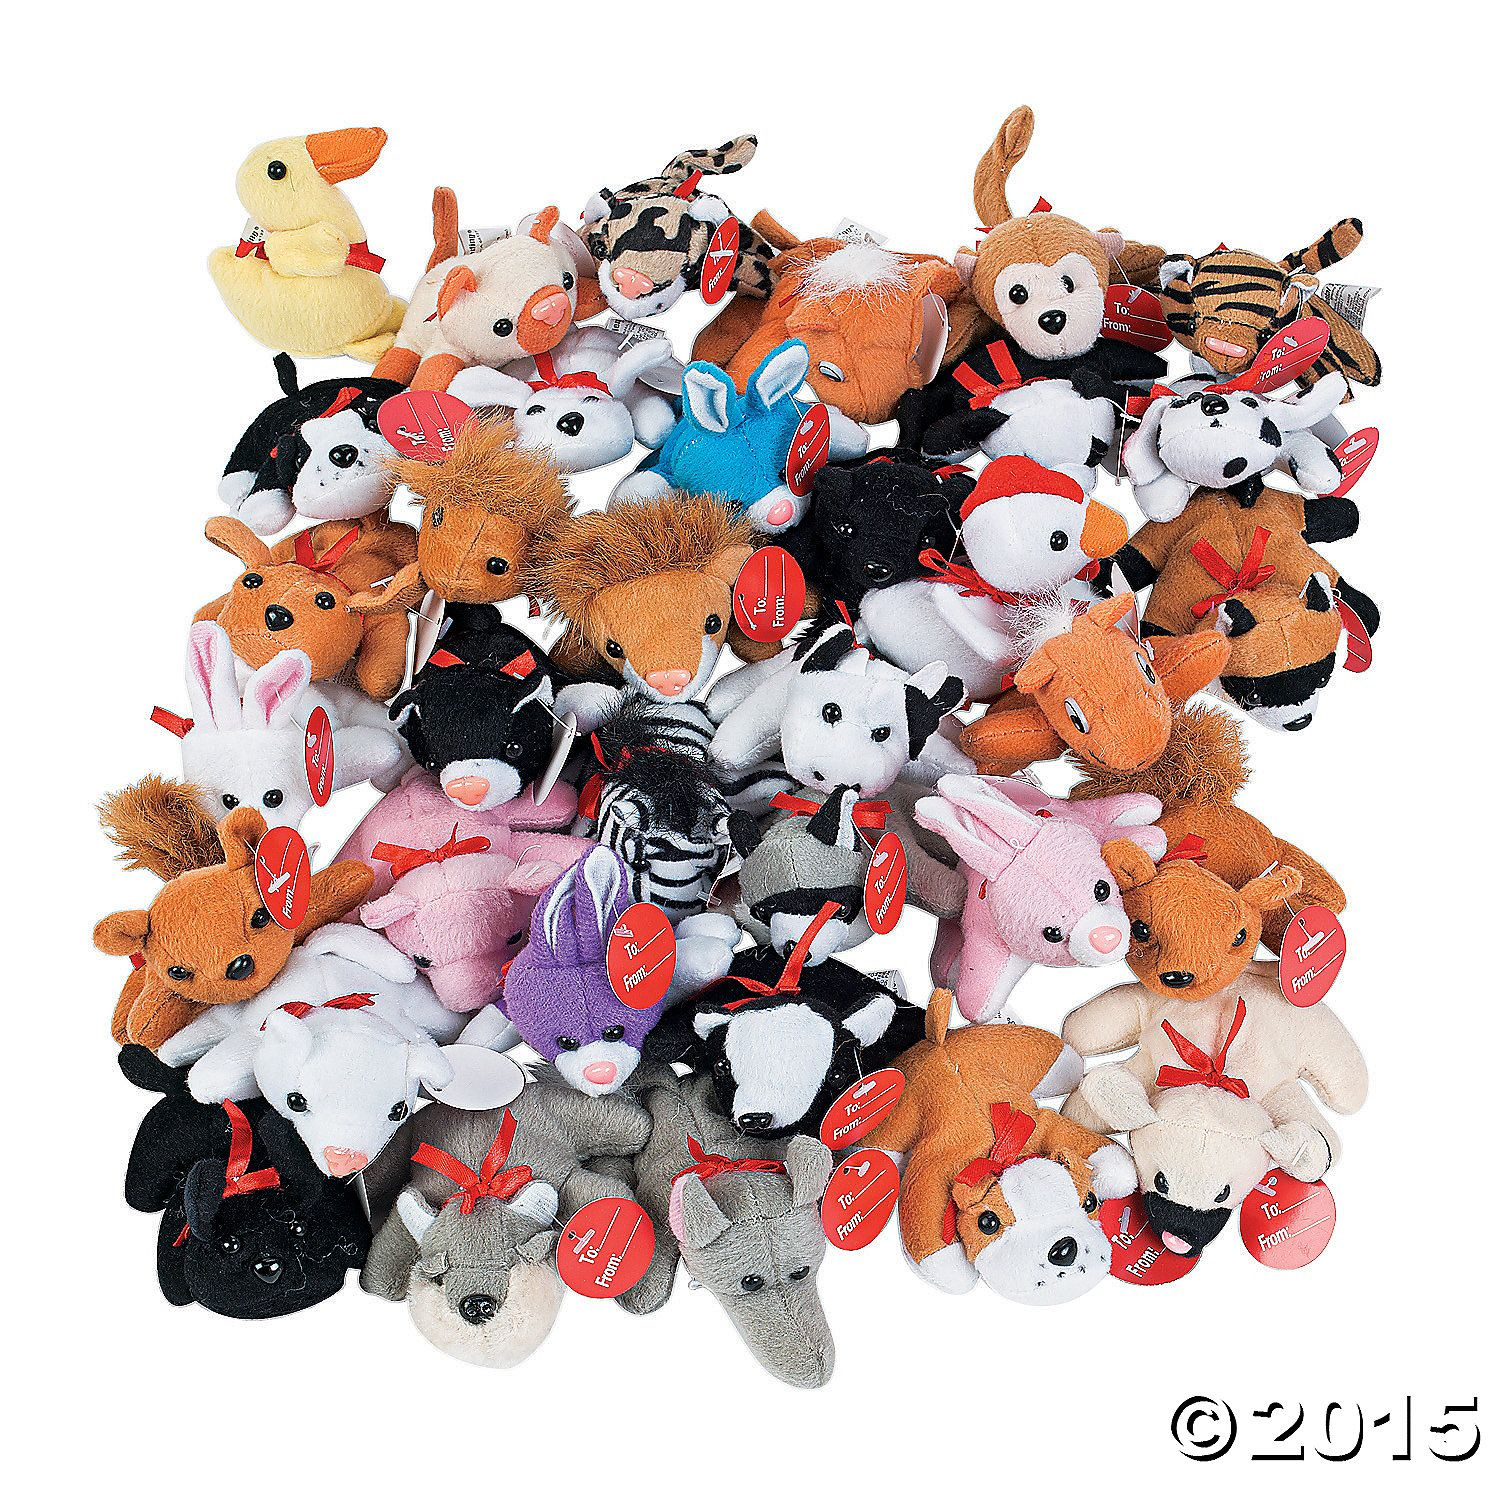 Exchange Mini Stuffed Animal Assortment Plush animals